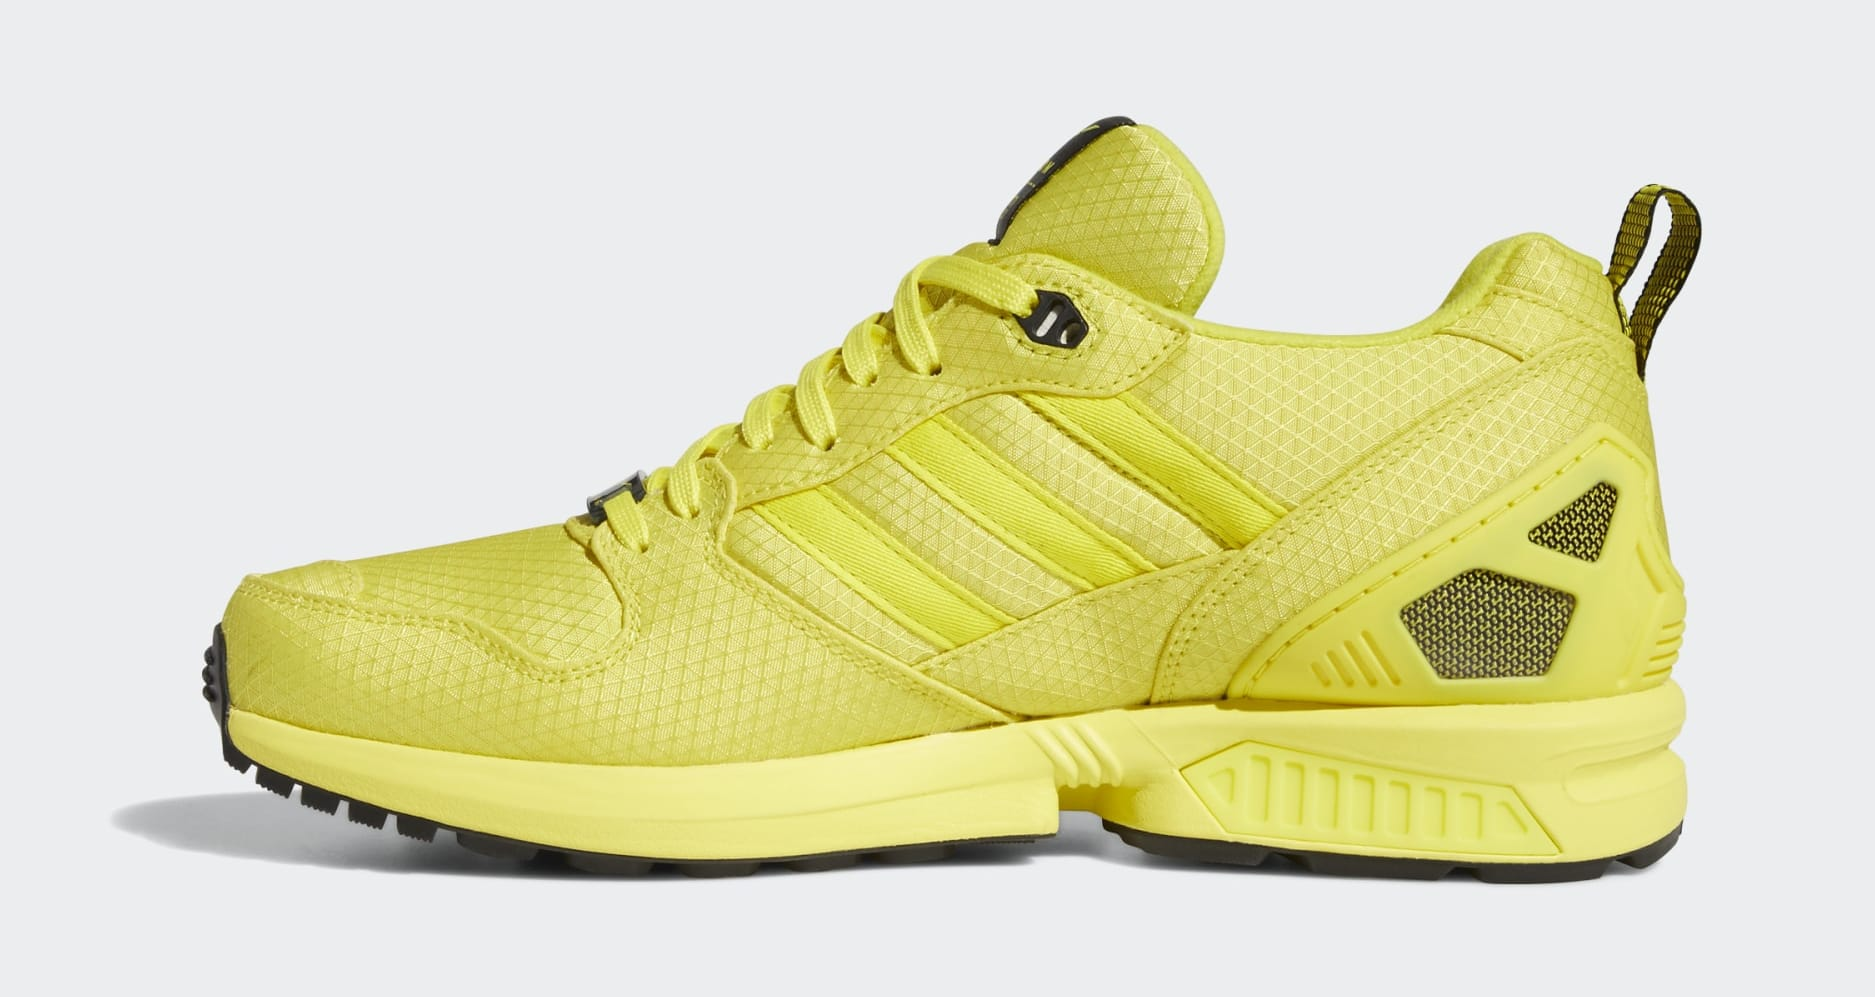 Adidas ZX 5000 'Torsion' FZ4645 Medial